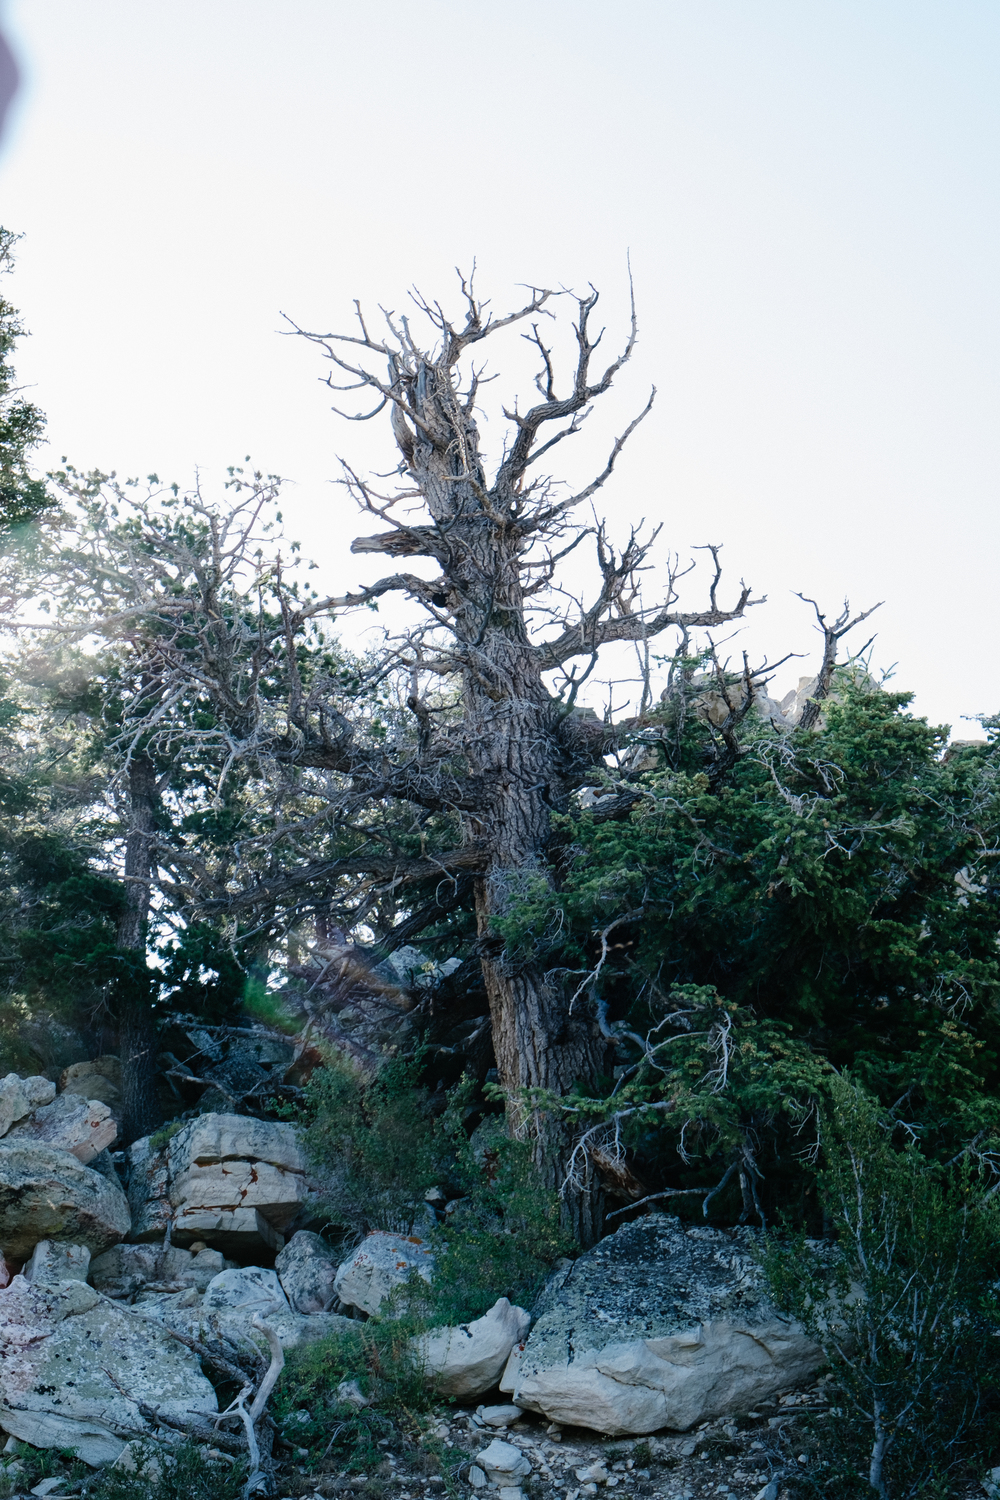 Age old bristlecone pines are scattered about the park, something the Great Basin is famous for